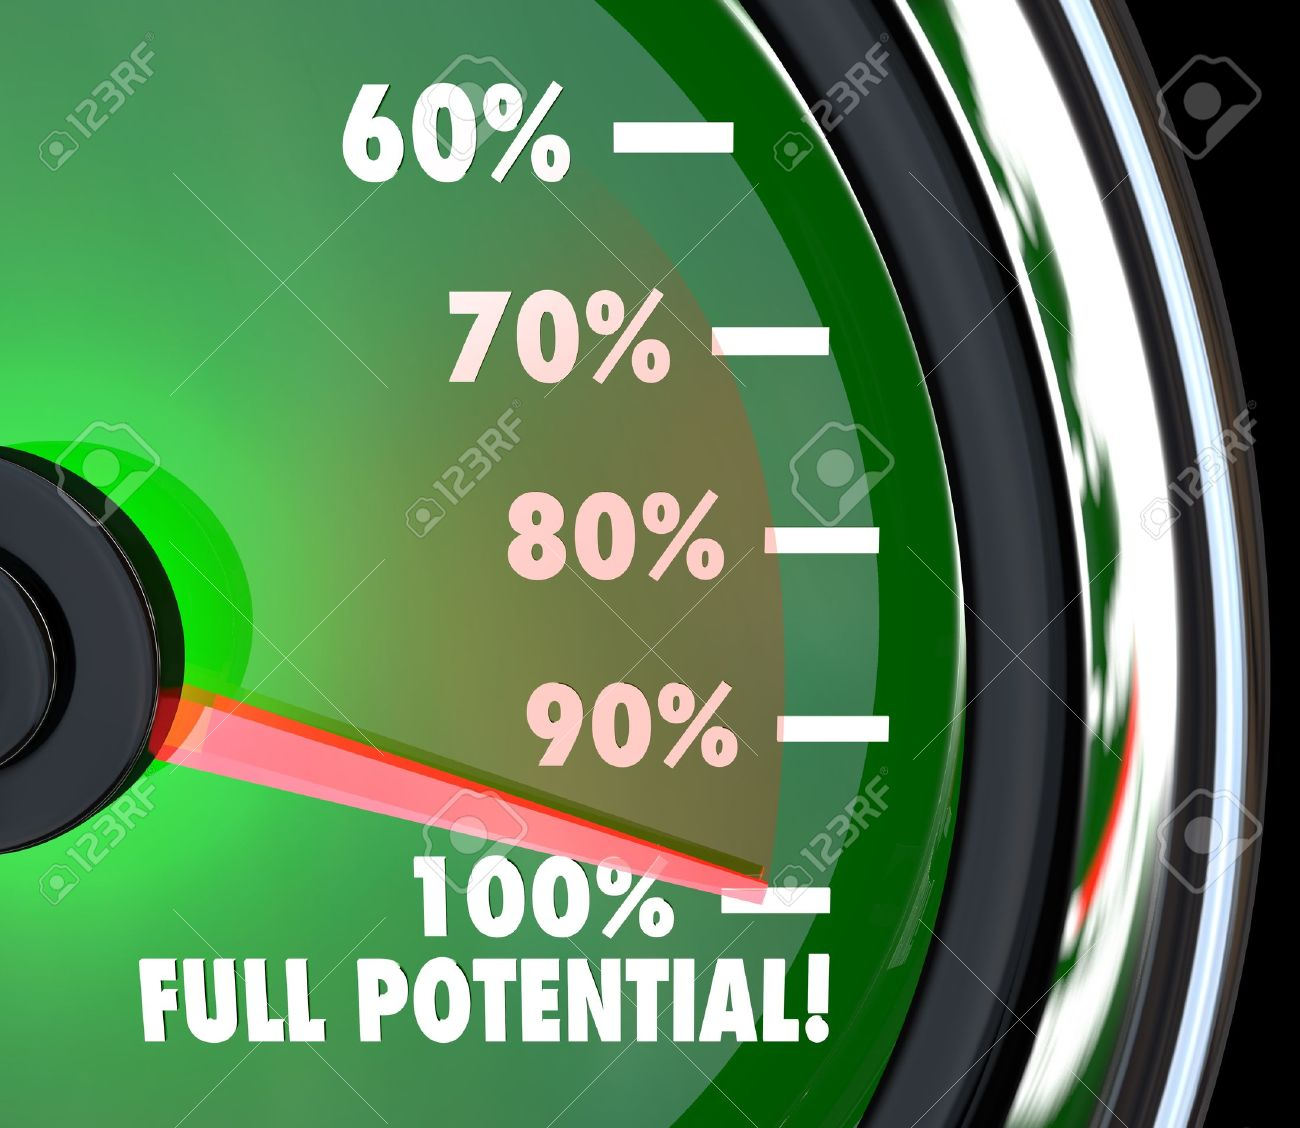 A speedometer with needle pointing to 100% Full Potential to symbolize that your maximum potential of opportunity has been reached and surpassed - 12232119